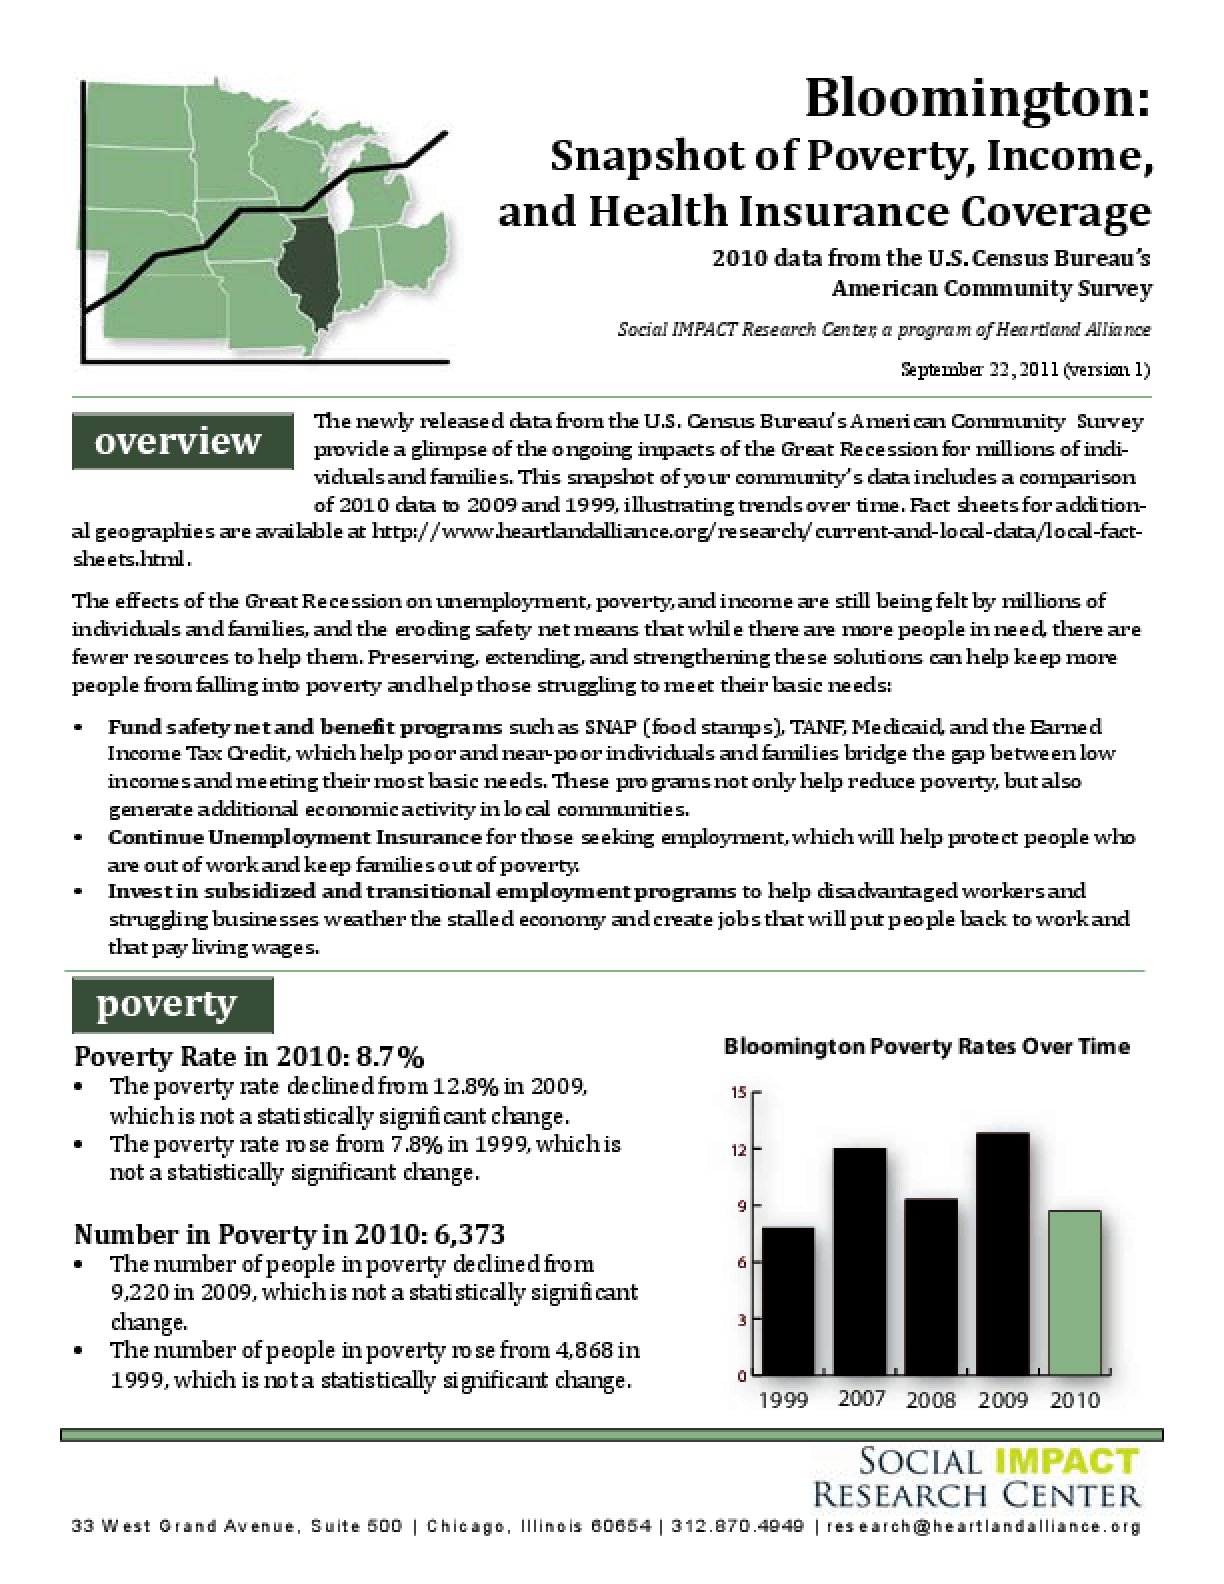 Bloomington: Snapshot of Poverty, Income, and Health Insurance Coverage